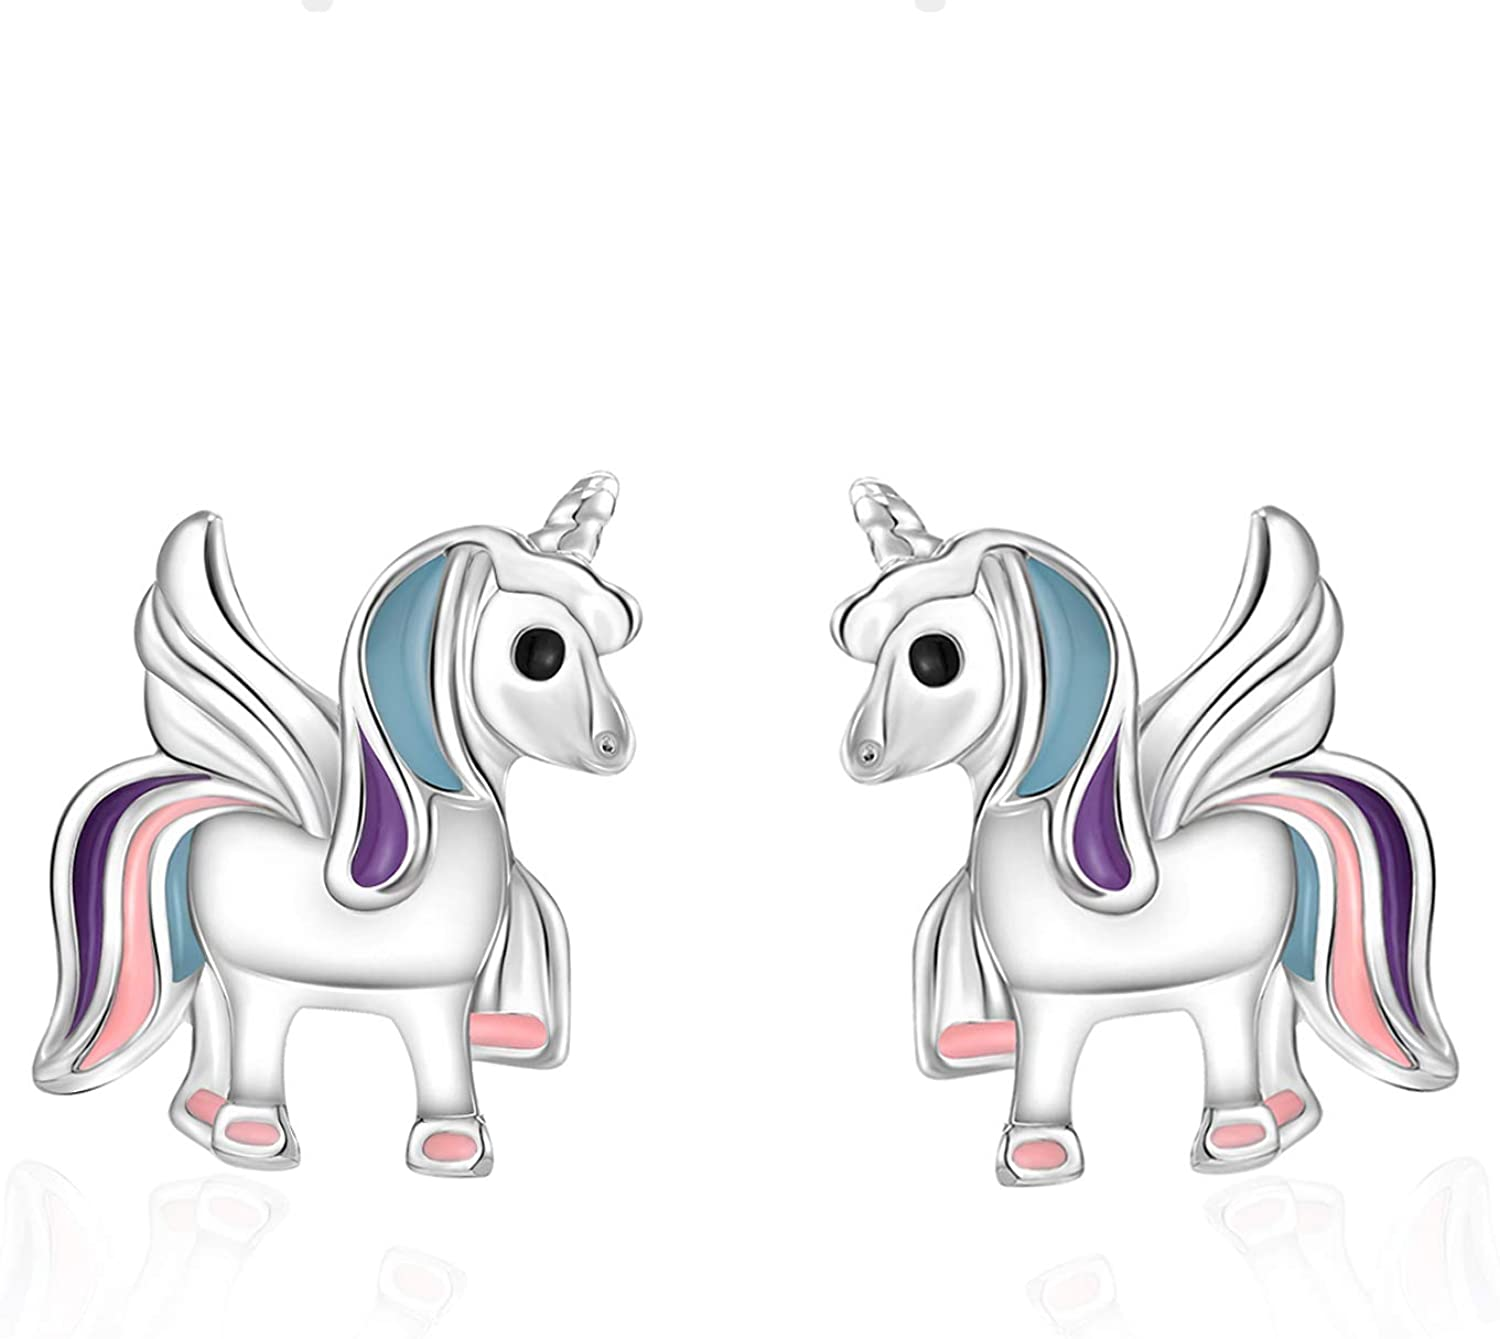 KINGSIN Unicorn Stud Earrings for Little Girls Silver Hypoallergenic Unicorn Jewelry Gifts for Daughter Sister Women Party Birthday